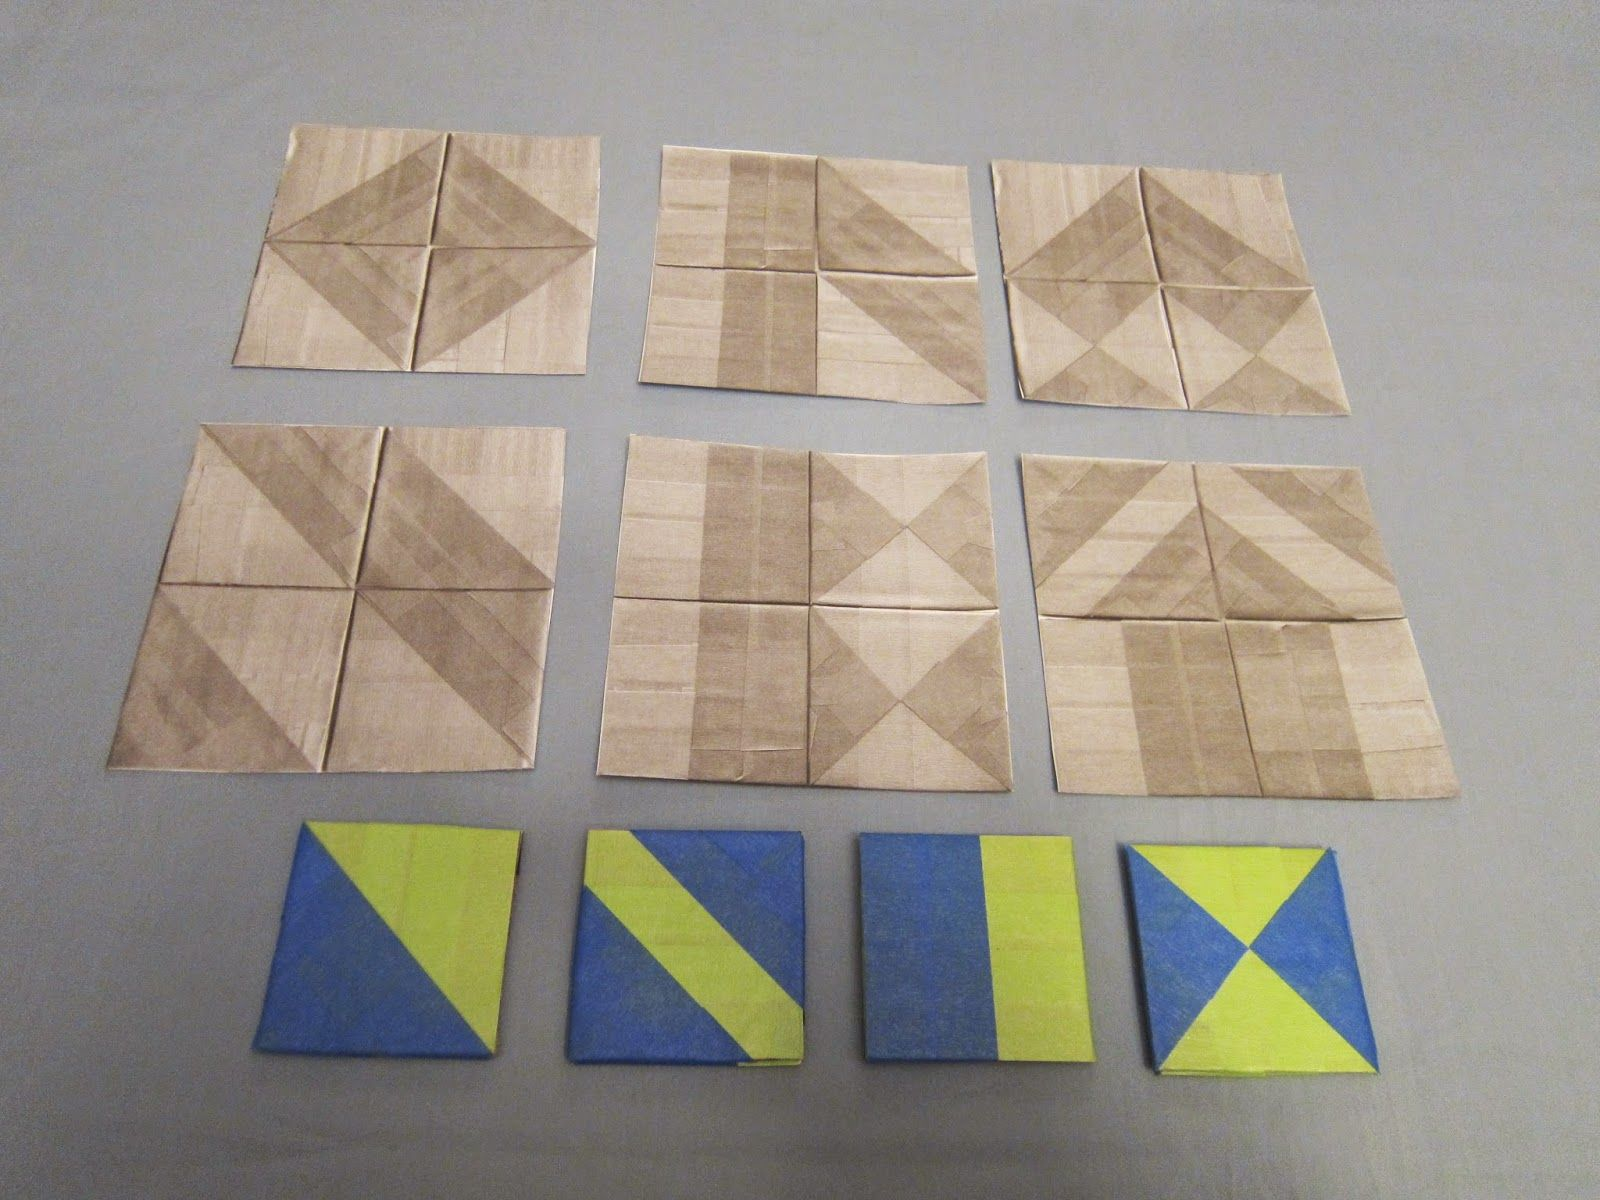 Learning Spatial Reasoning Skills Is Important And This